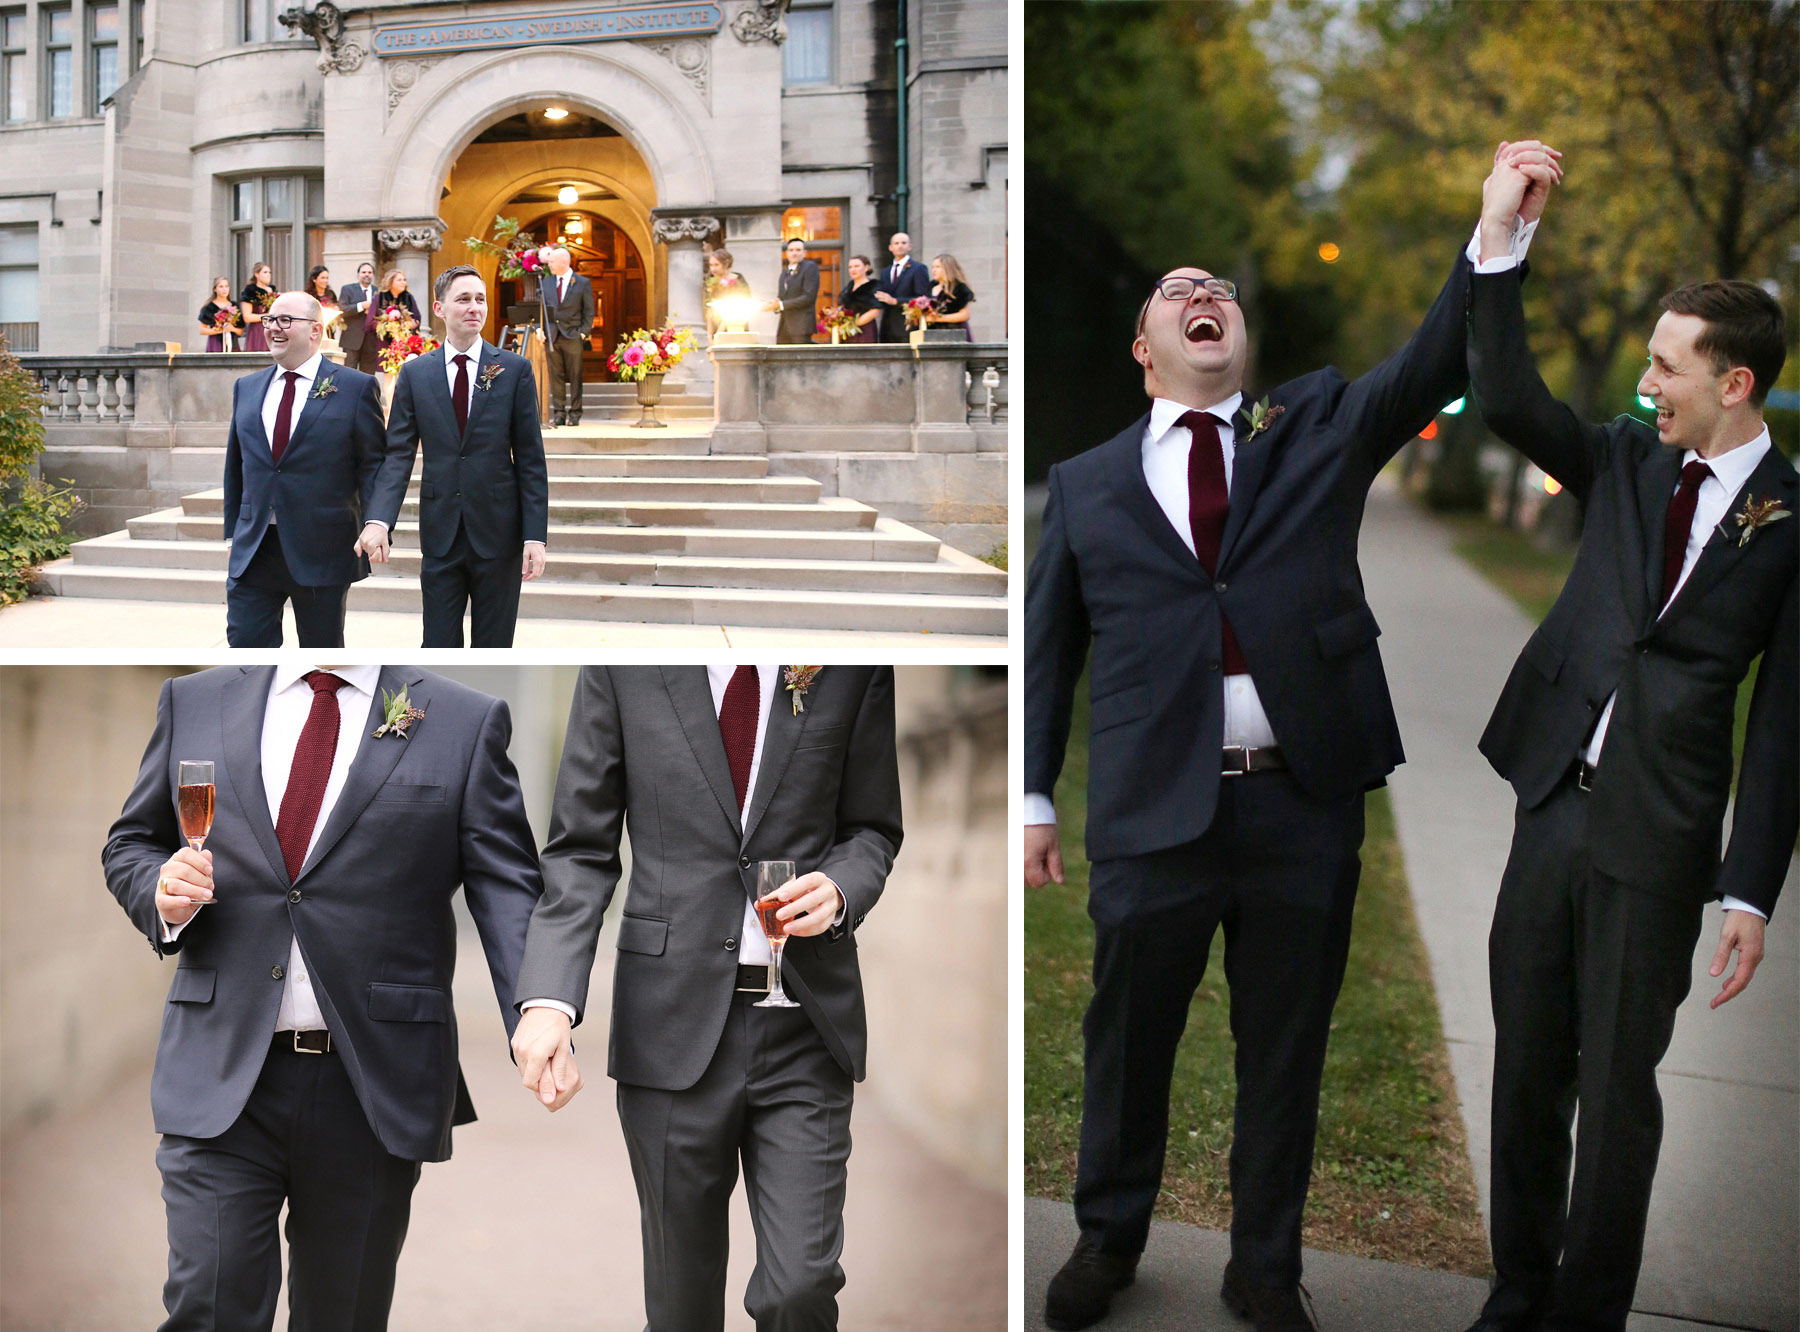 16-Minneapolis-Minnesota-Wedding-Photographer-by-Andrew-Vick-Photography-Fall-Autumn-American-Swedish-Institute-Ceremony-Groom-Recessional-Pink-Champagne-Celebration-Ben-and-Adam.jpg